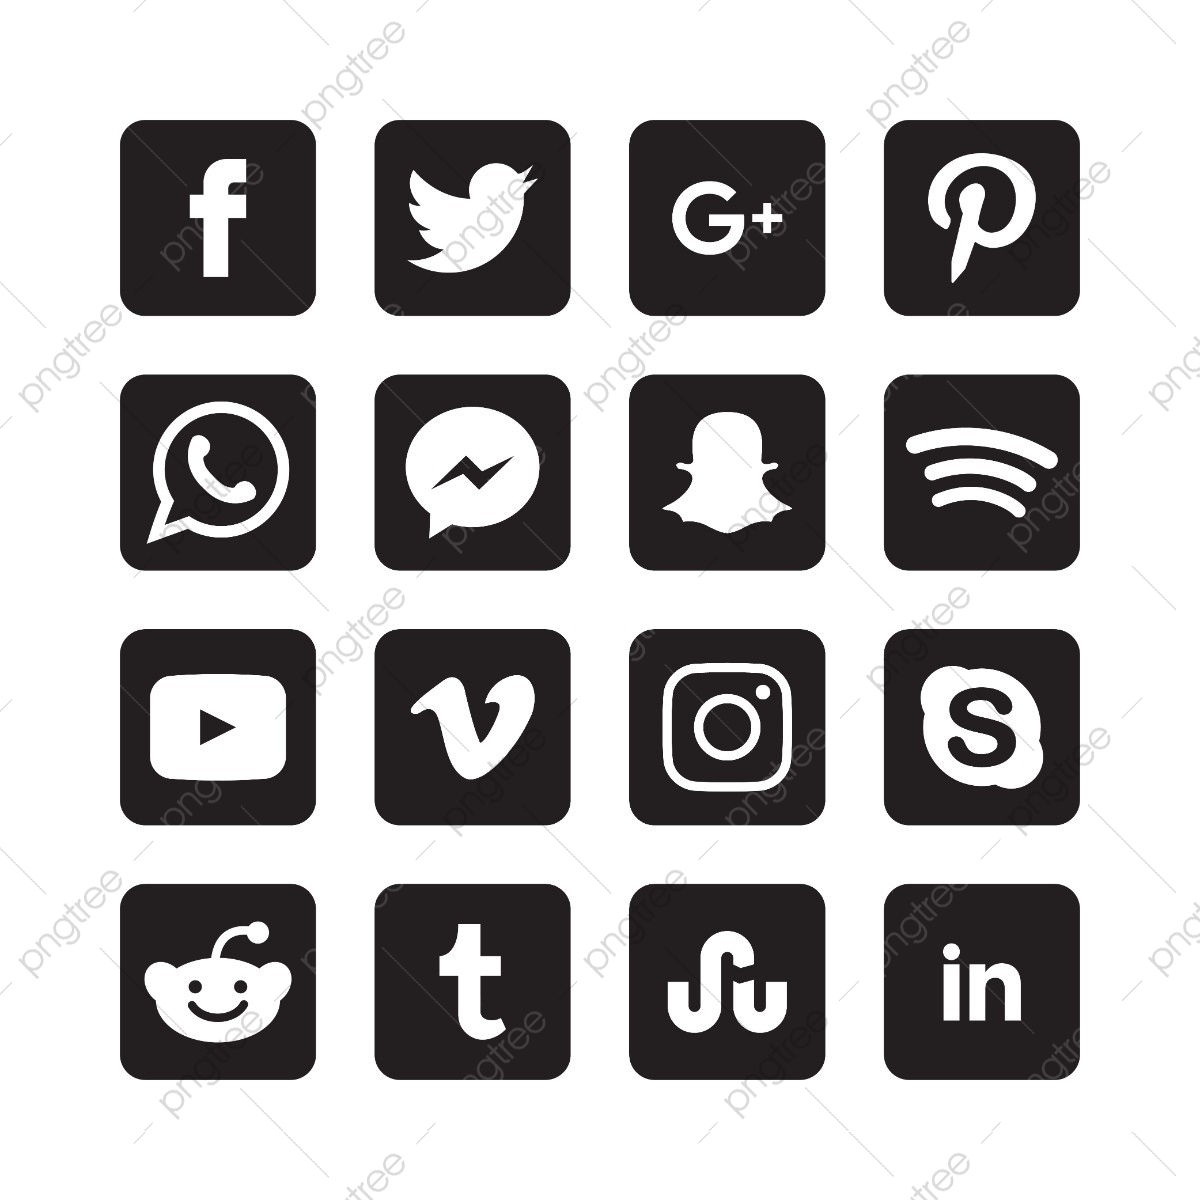 Black And White Square Social Media Icons, Abstract, App, Black PNG